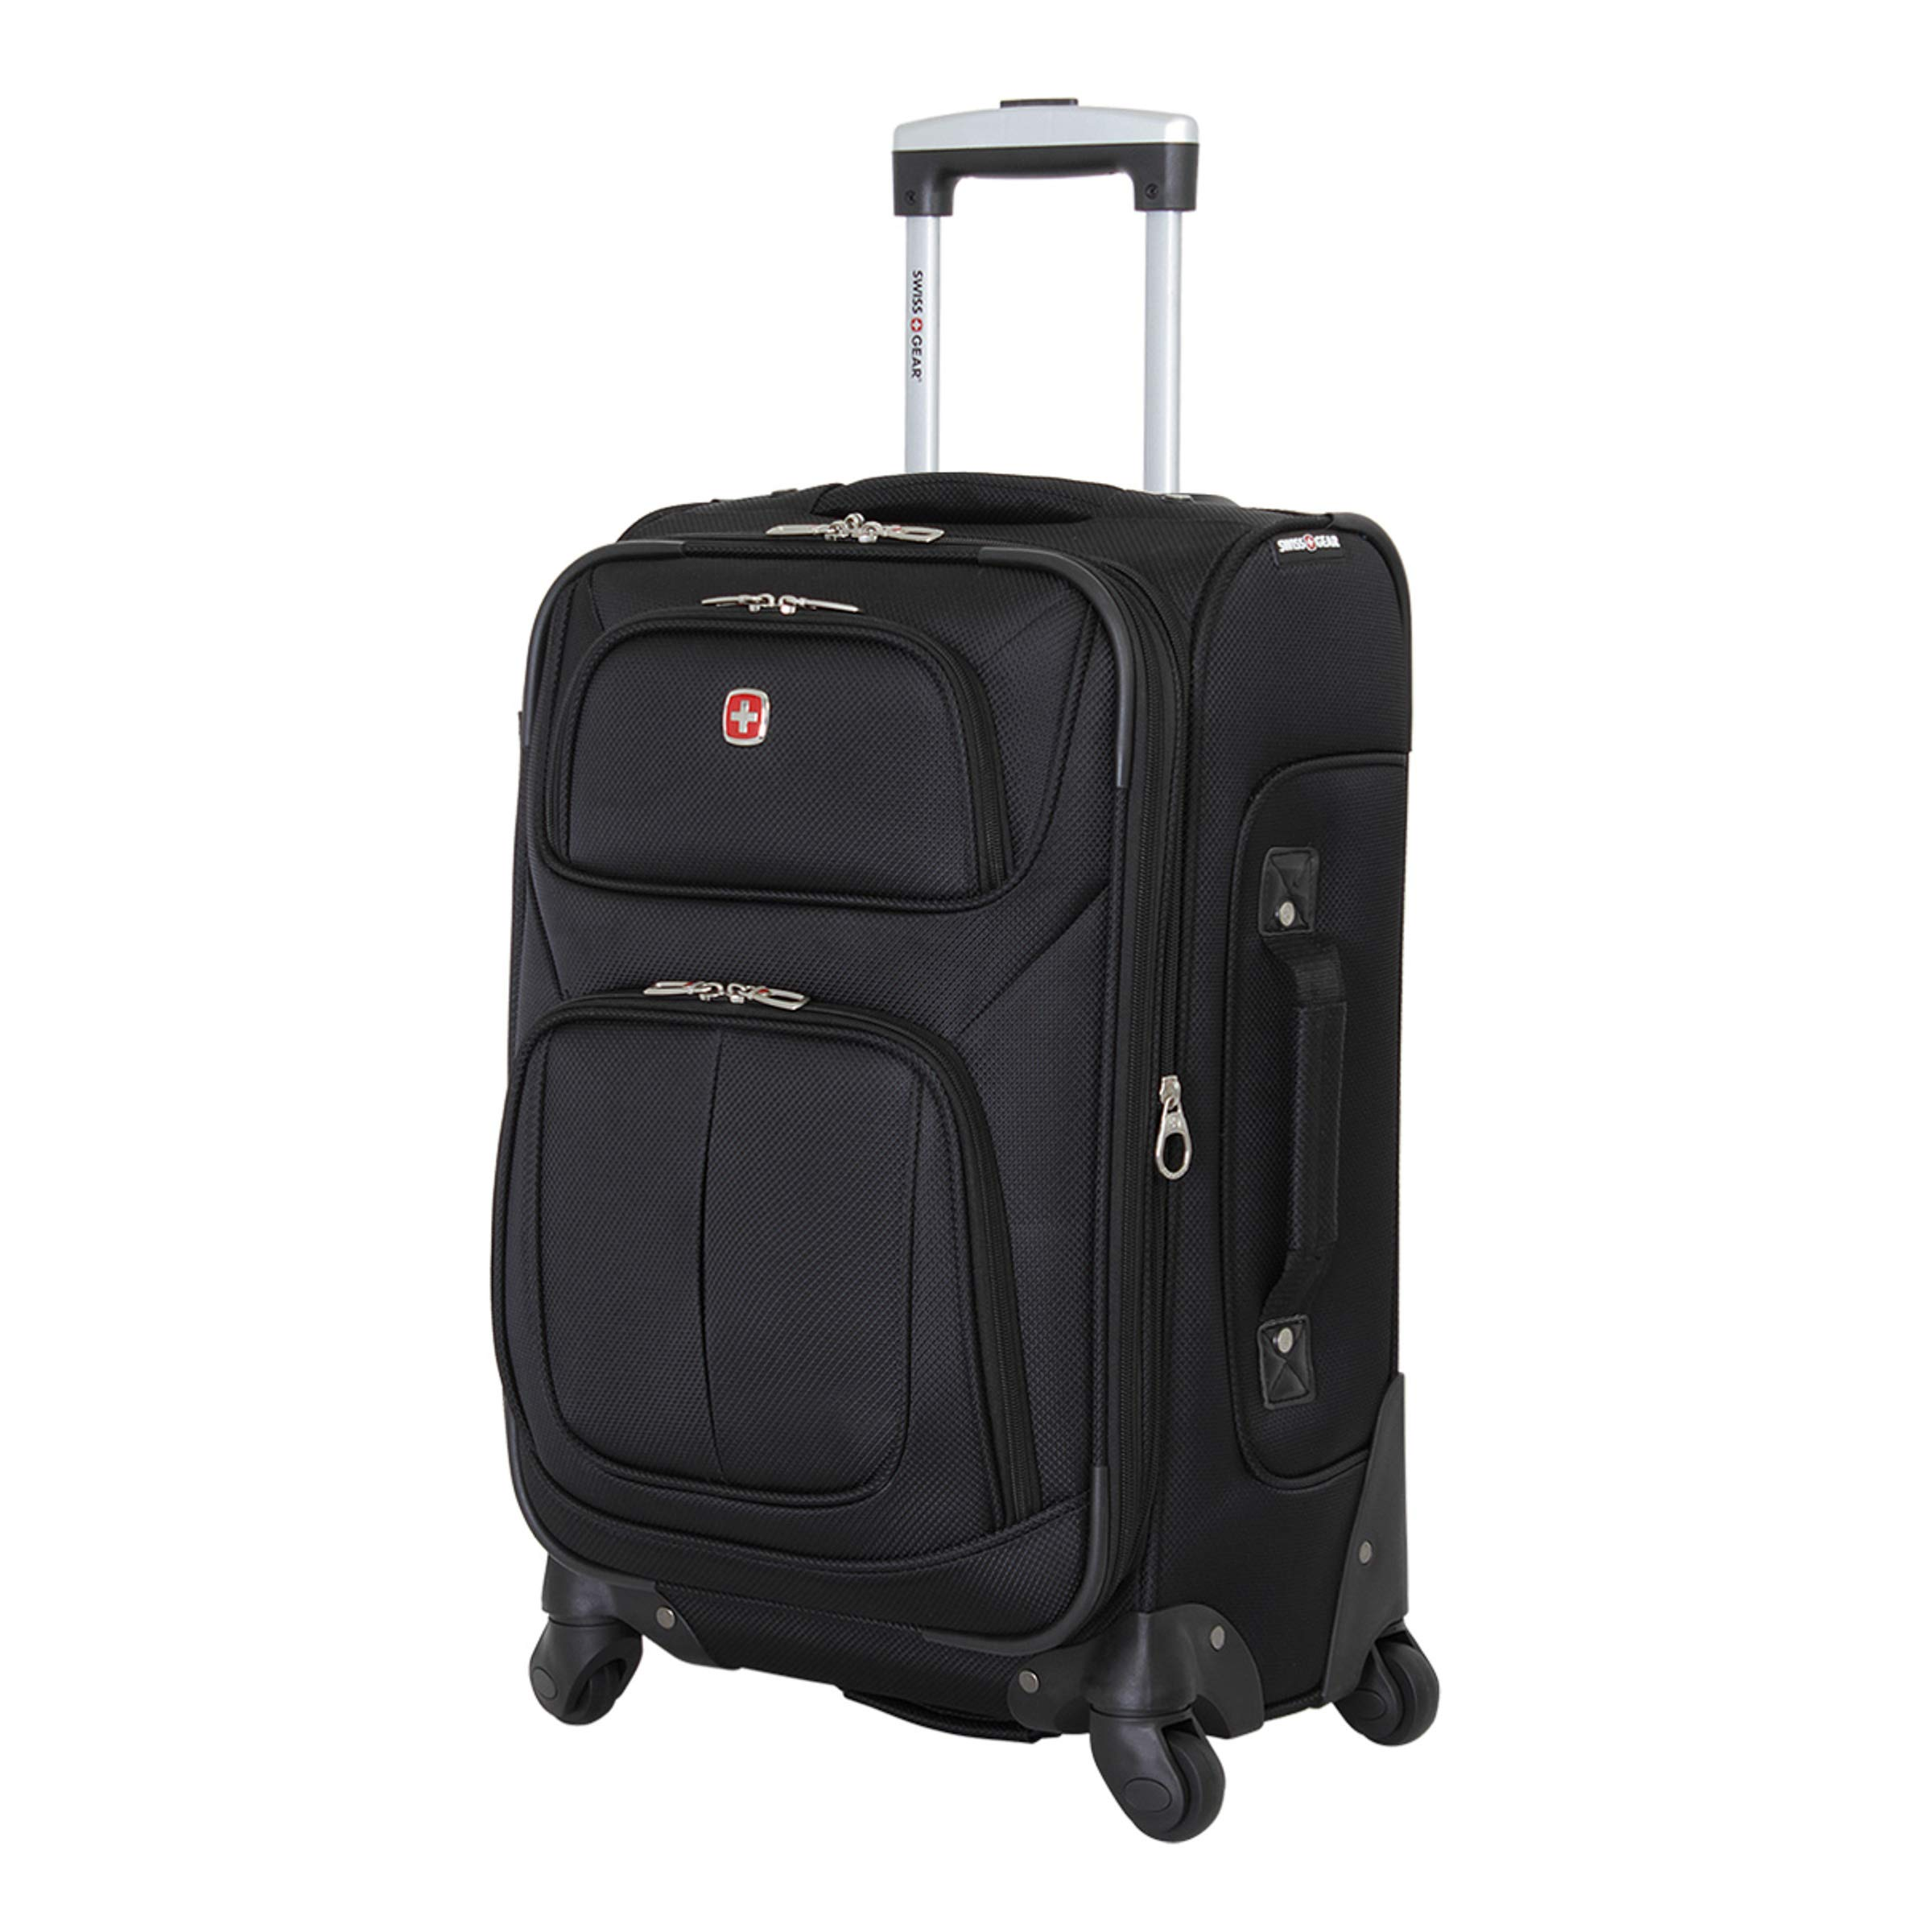 Sion Softside Luggage with Spinner Wheels, Black, Carry-On 21-Inch